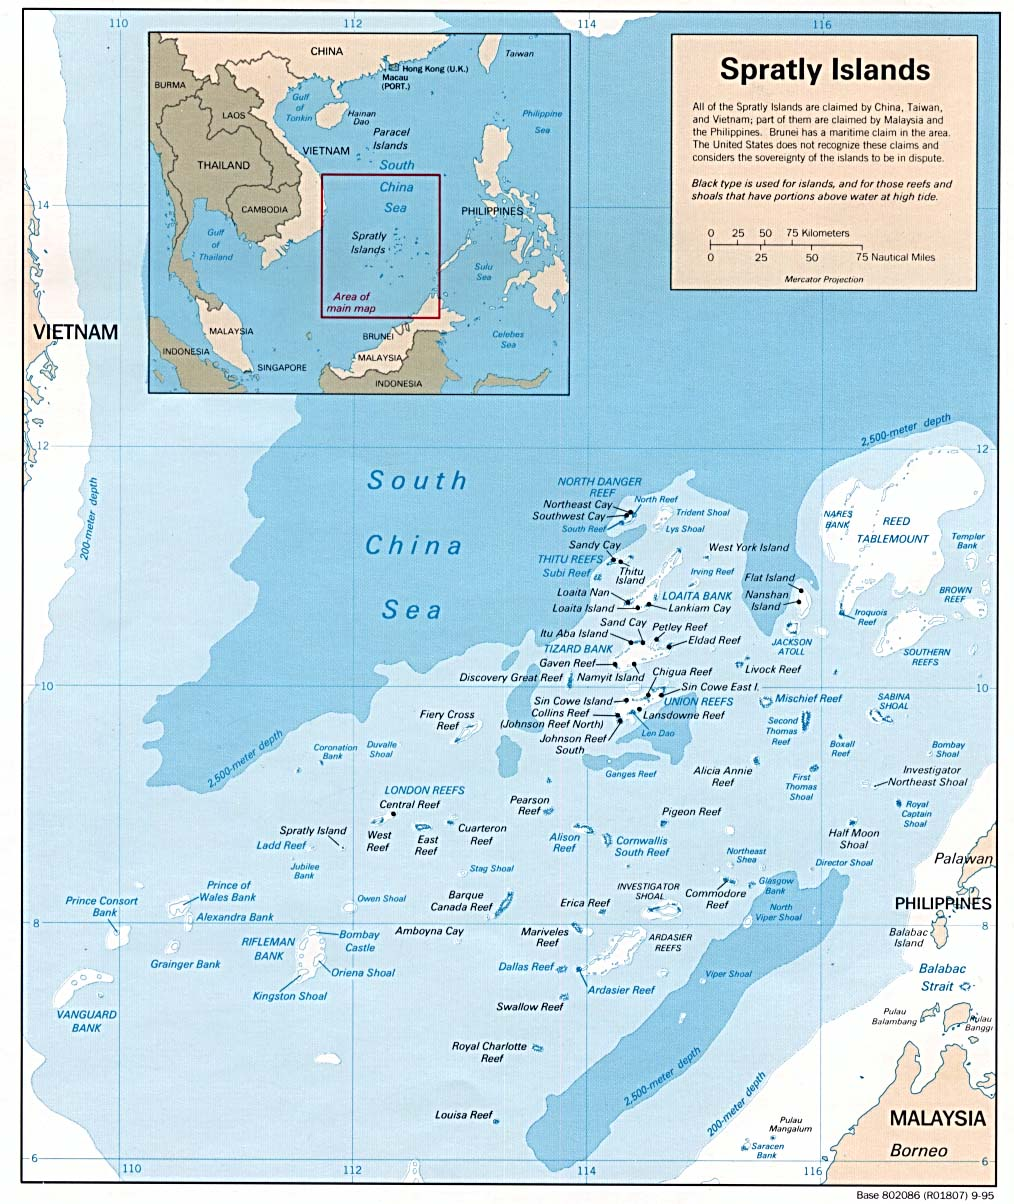 Spratly Islands Maps - Perry-Castañeda Map Collection - UT ... on caspian sea, bay of bengal, arabian sea, sea of japan, map of red sea area, map of baltic sea area, yangtze river, map of caspian sea area, south china sea islands, map of east china sea area, red sea, yellow sea, gobi desert, map of aegean sea area, map of barents sea area, indian ocean, caribbean sea, mediterranean sea, black sea, east china sea, yellow river, map of china and oceans, scarborough shoal, map of eastern sea, map of india and china sea, paracel islands, strait of malacca, spratly islands, map of black sea area, map of adriatic sea area,